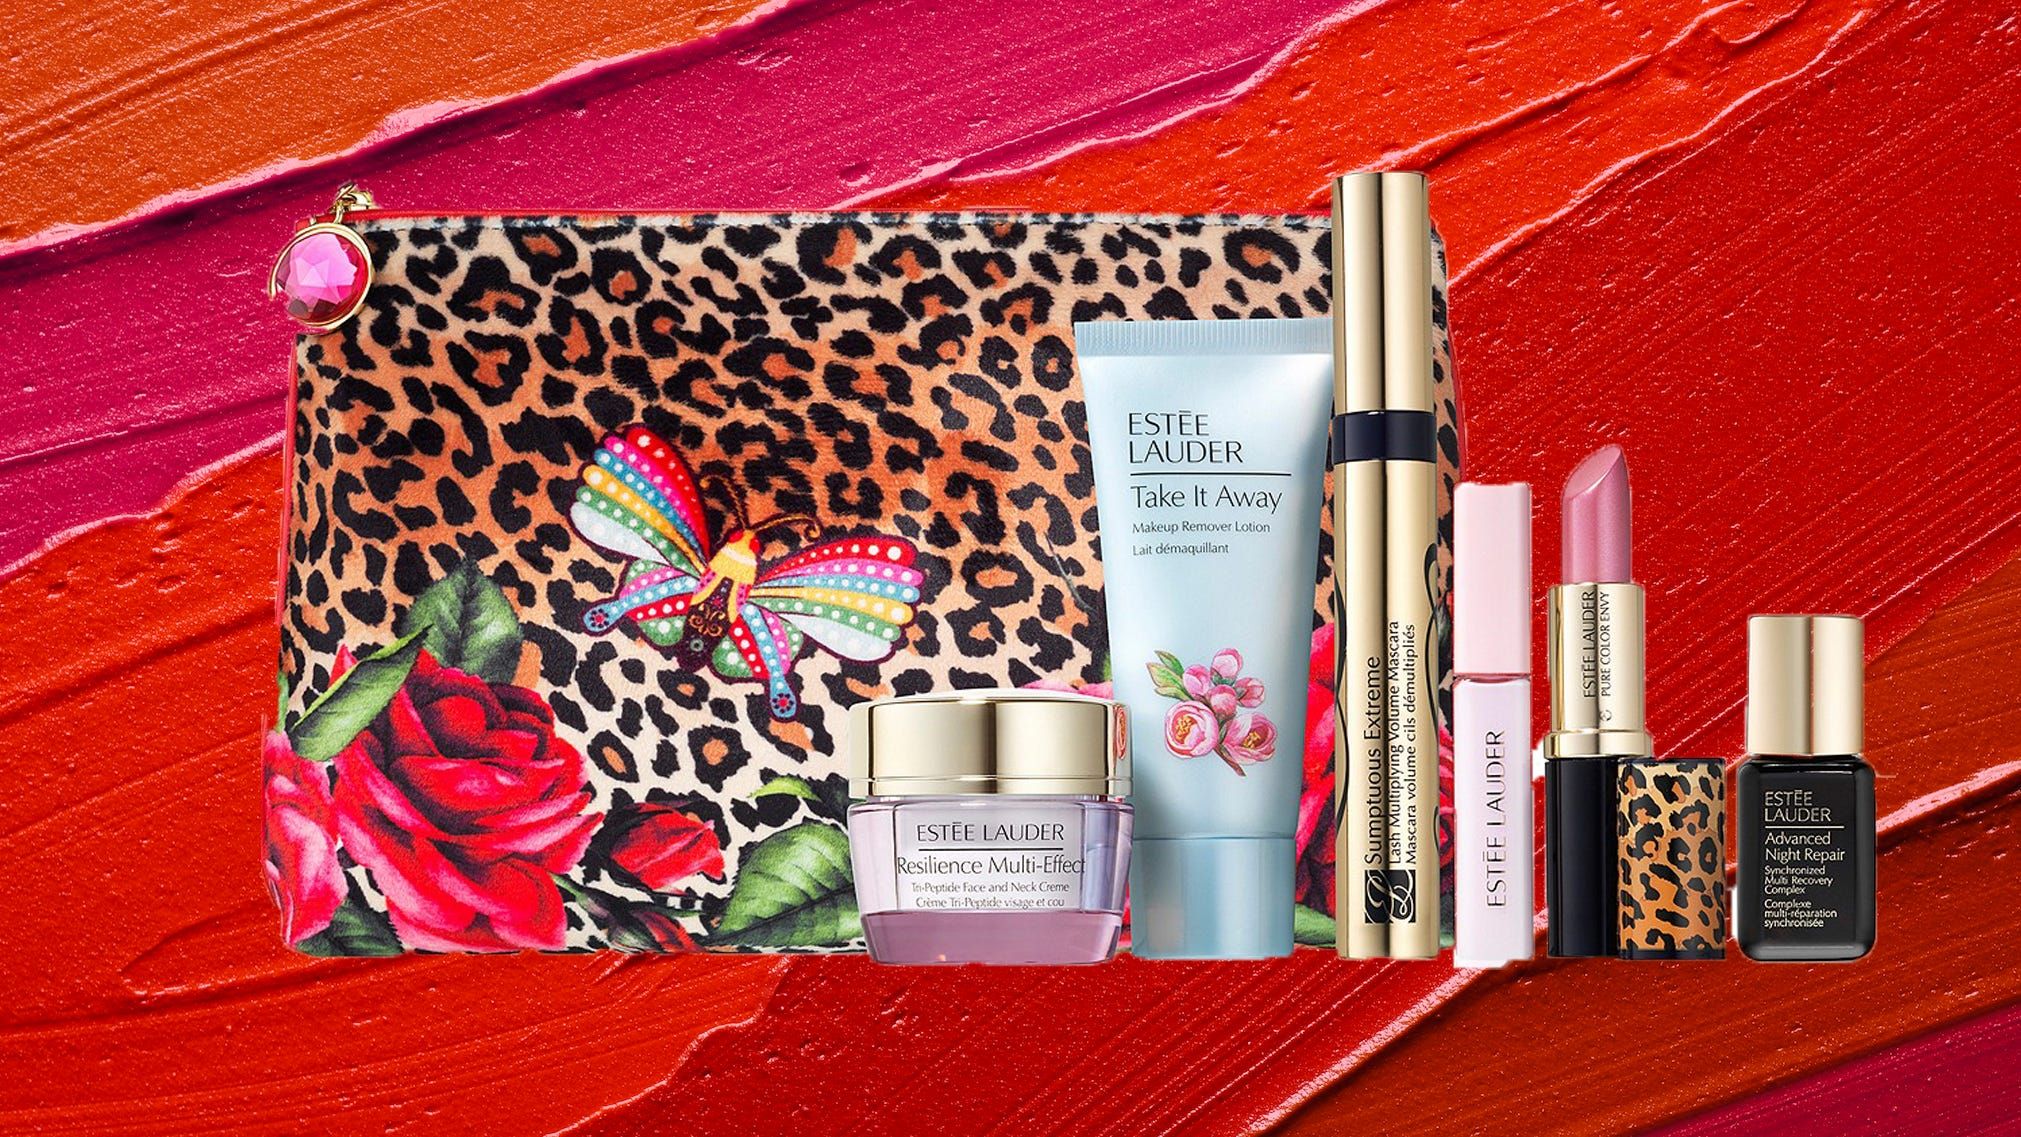 Estee Lauder Christmas Set 2021 Estee Lauder Free Gift Get This Seven Piece Gift Bag With Your Spend Of 40